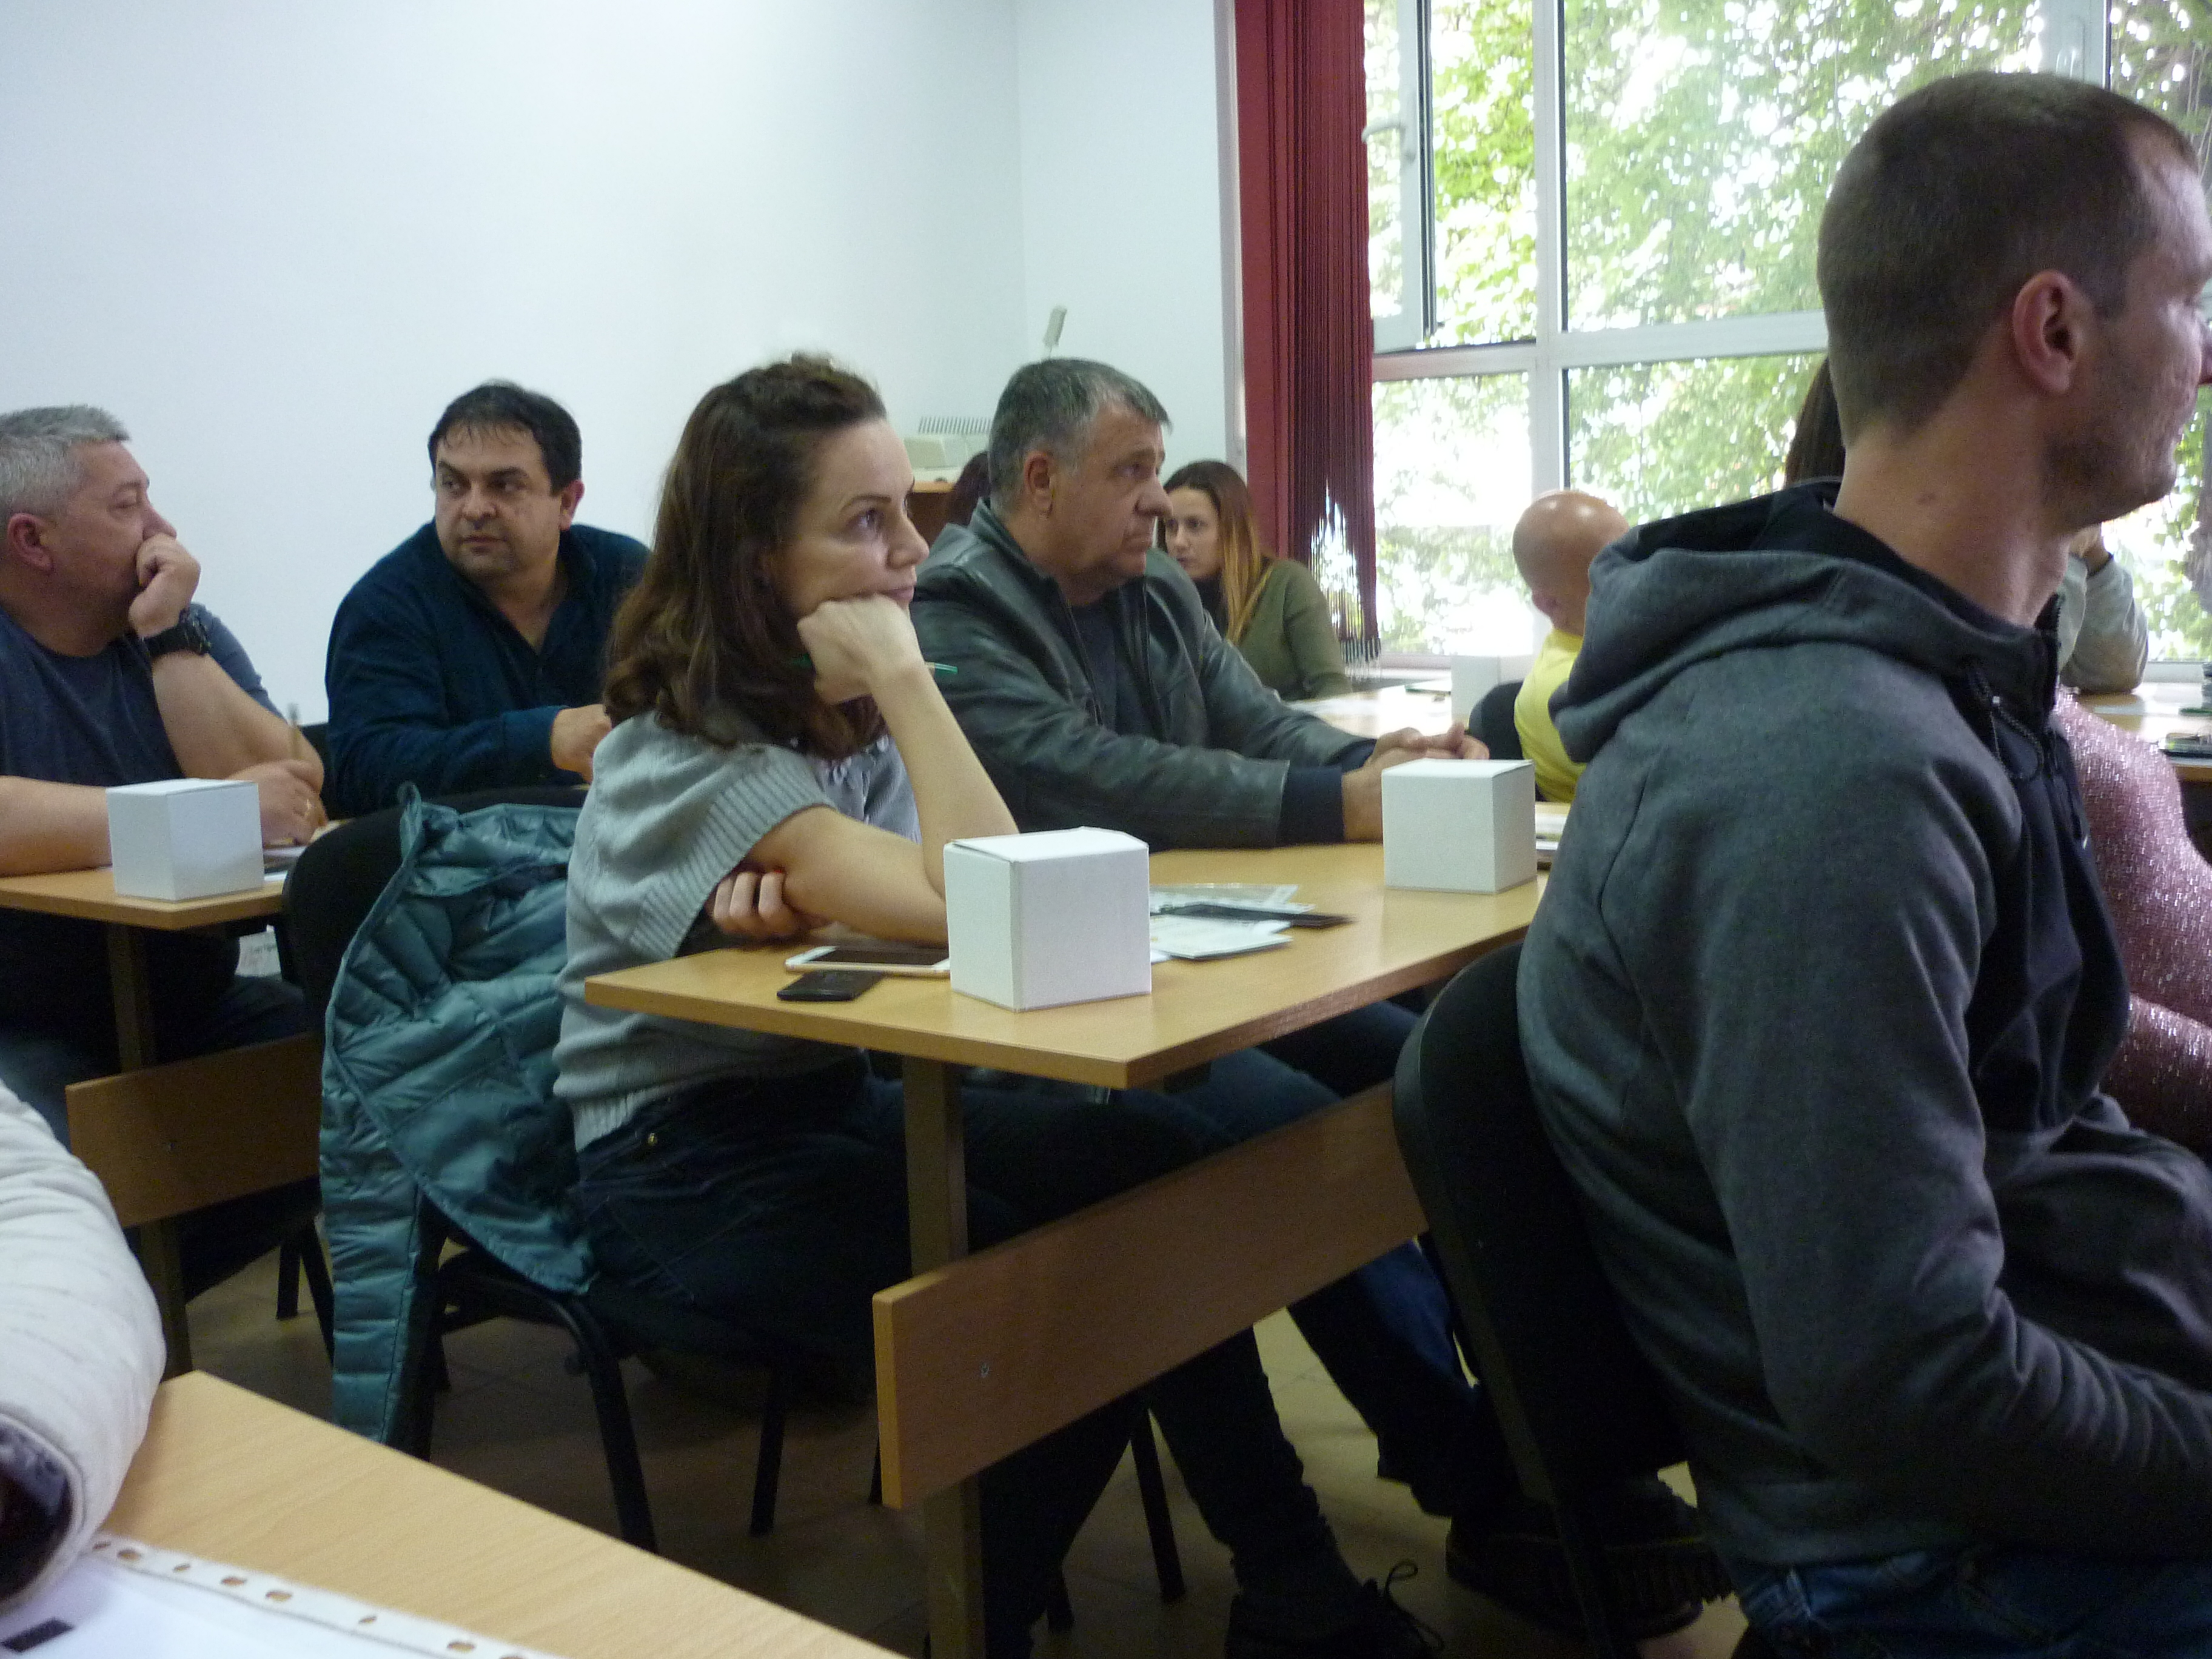 Mentoring for start-ups was held on May 17, 2019 in the city of Gabrovo